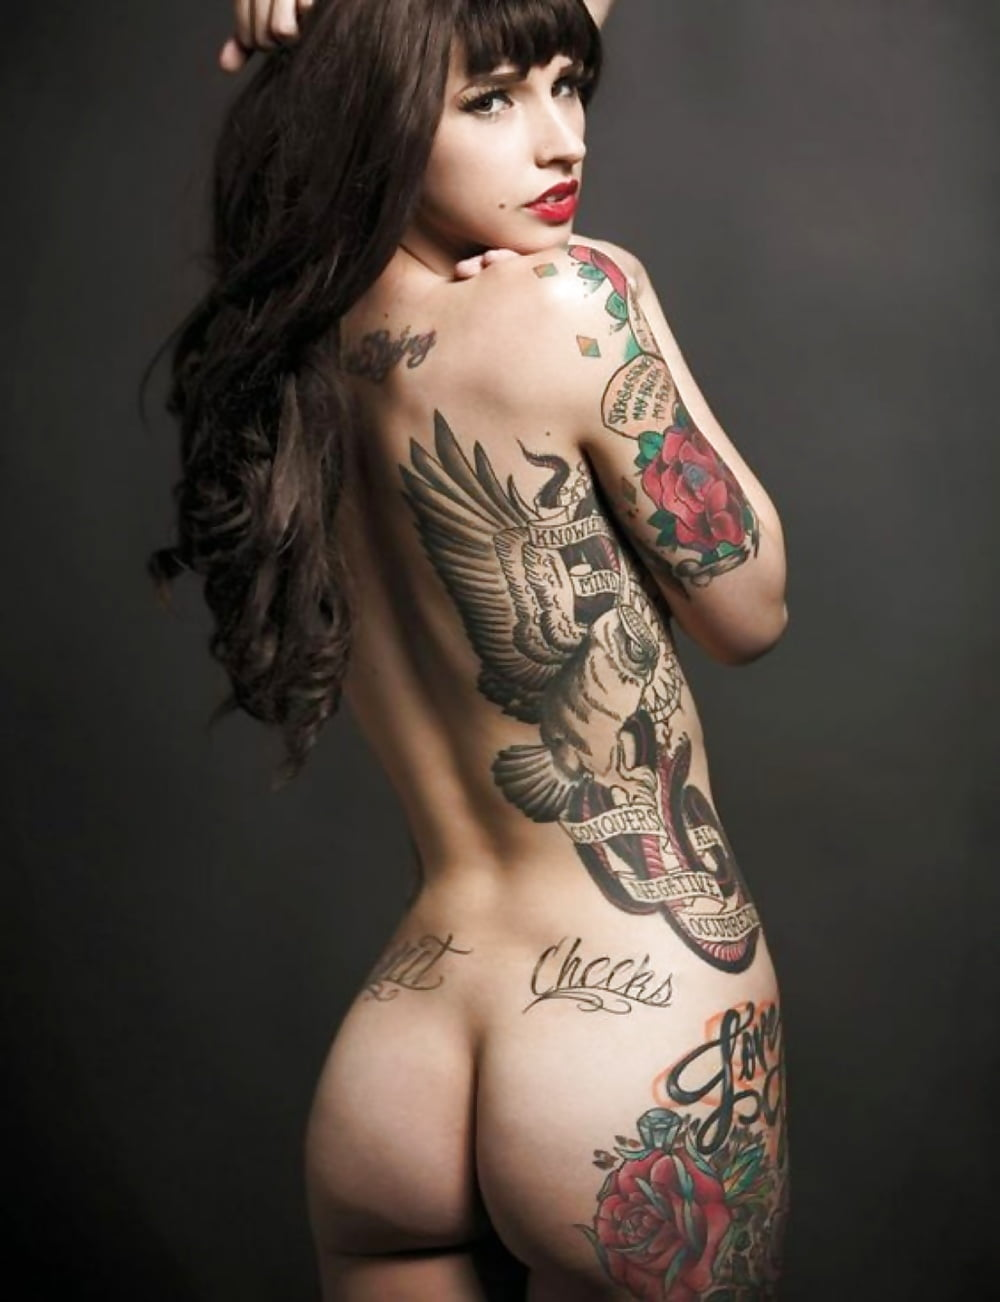 very-tattooed-naked-girl-young-slutty-girl-selfie-naked